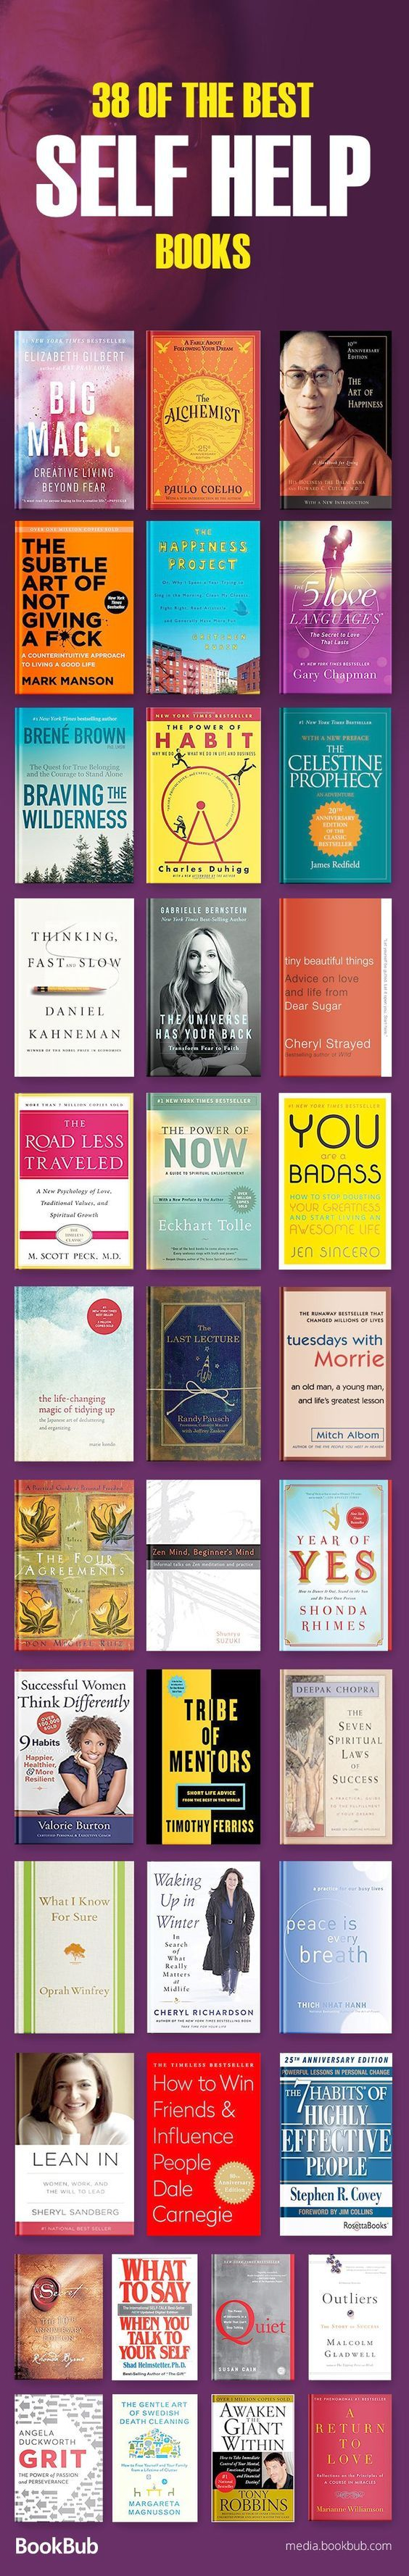 Great list of self help books for women, teachers, young adults, and more. Including inspirational books on personal development, depression, relationships, happiness, confidence, and more. Add these to your 2018 reading list!